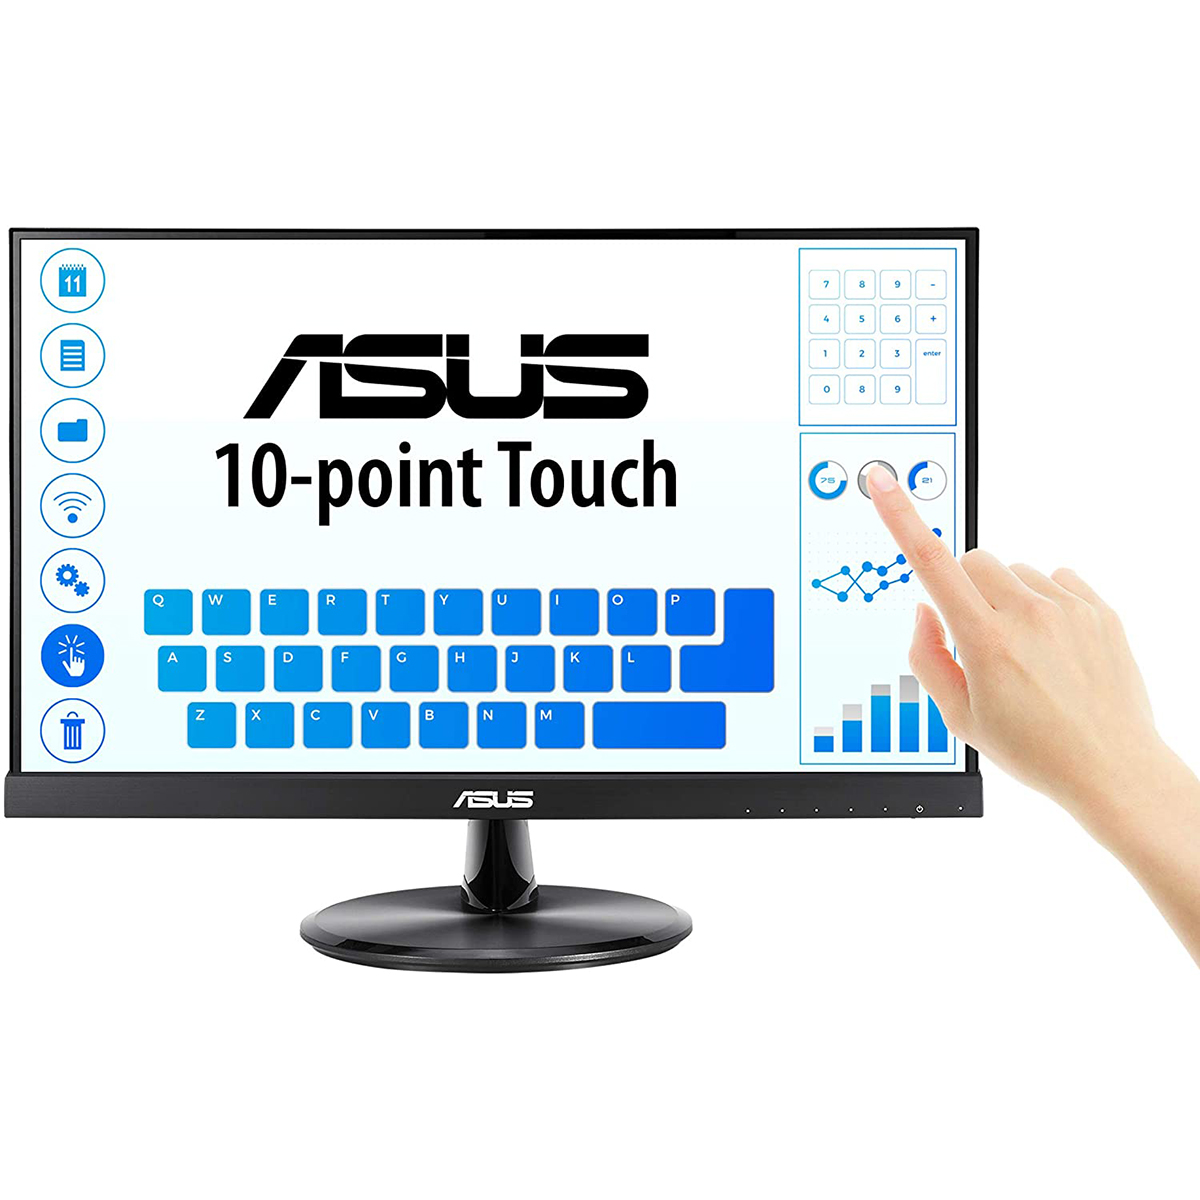 ASUS VT229H 21.5 Full HD, 10-point Touch, IPS, 178degree Wide Vi